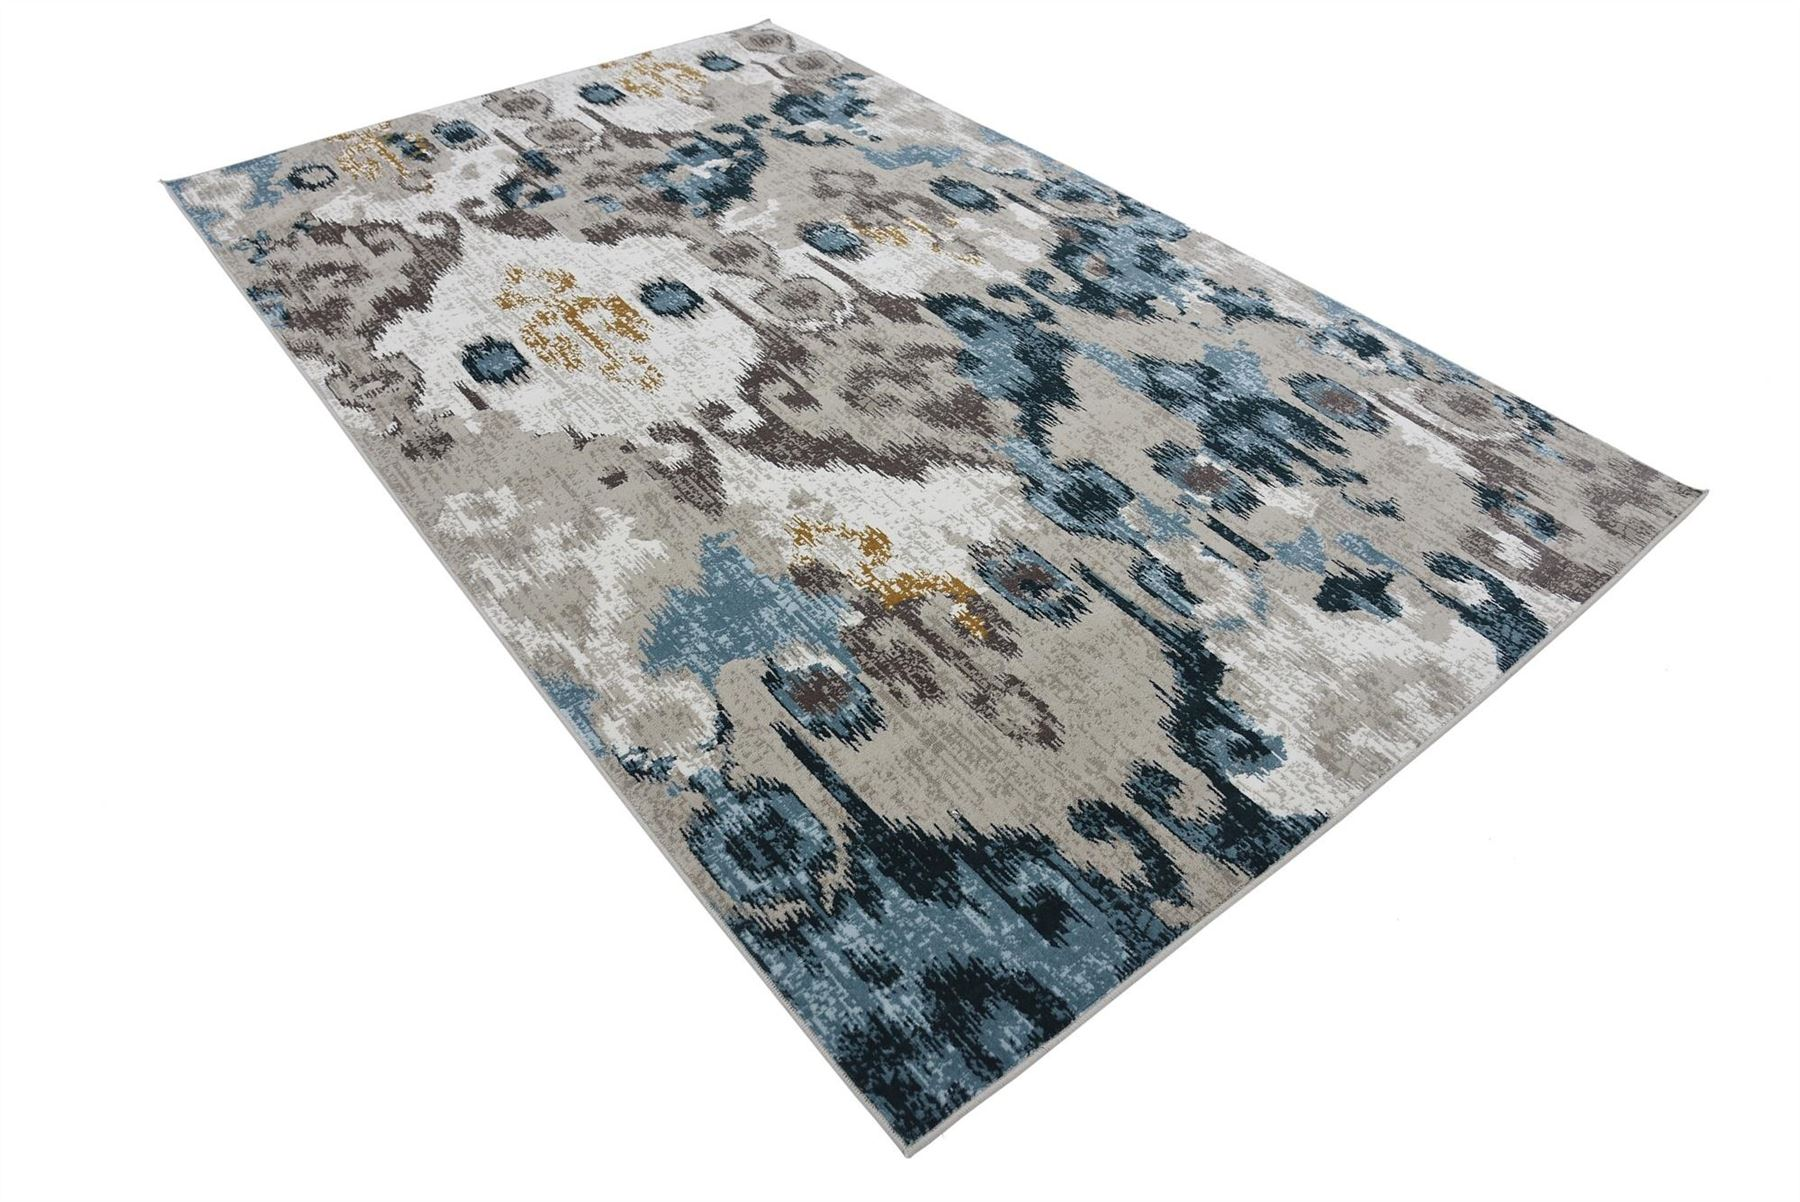 Area rug over dyed rugs vintage carpets all room sizes for Room size rugs